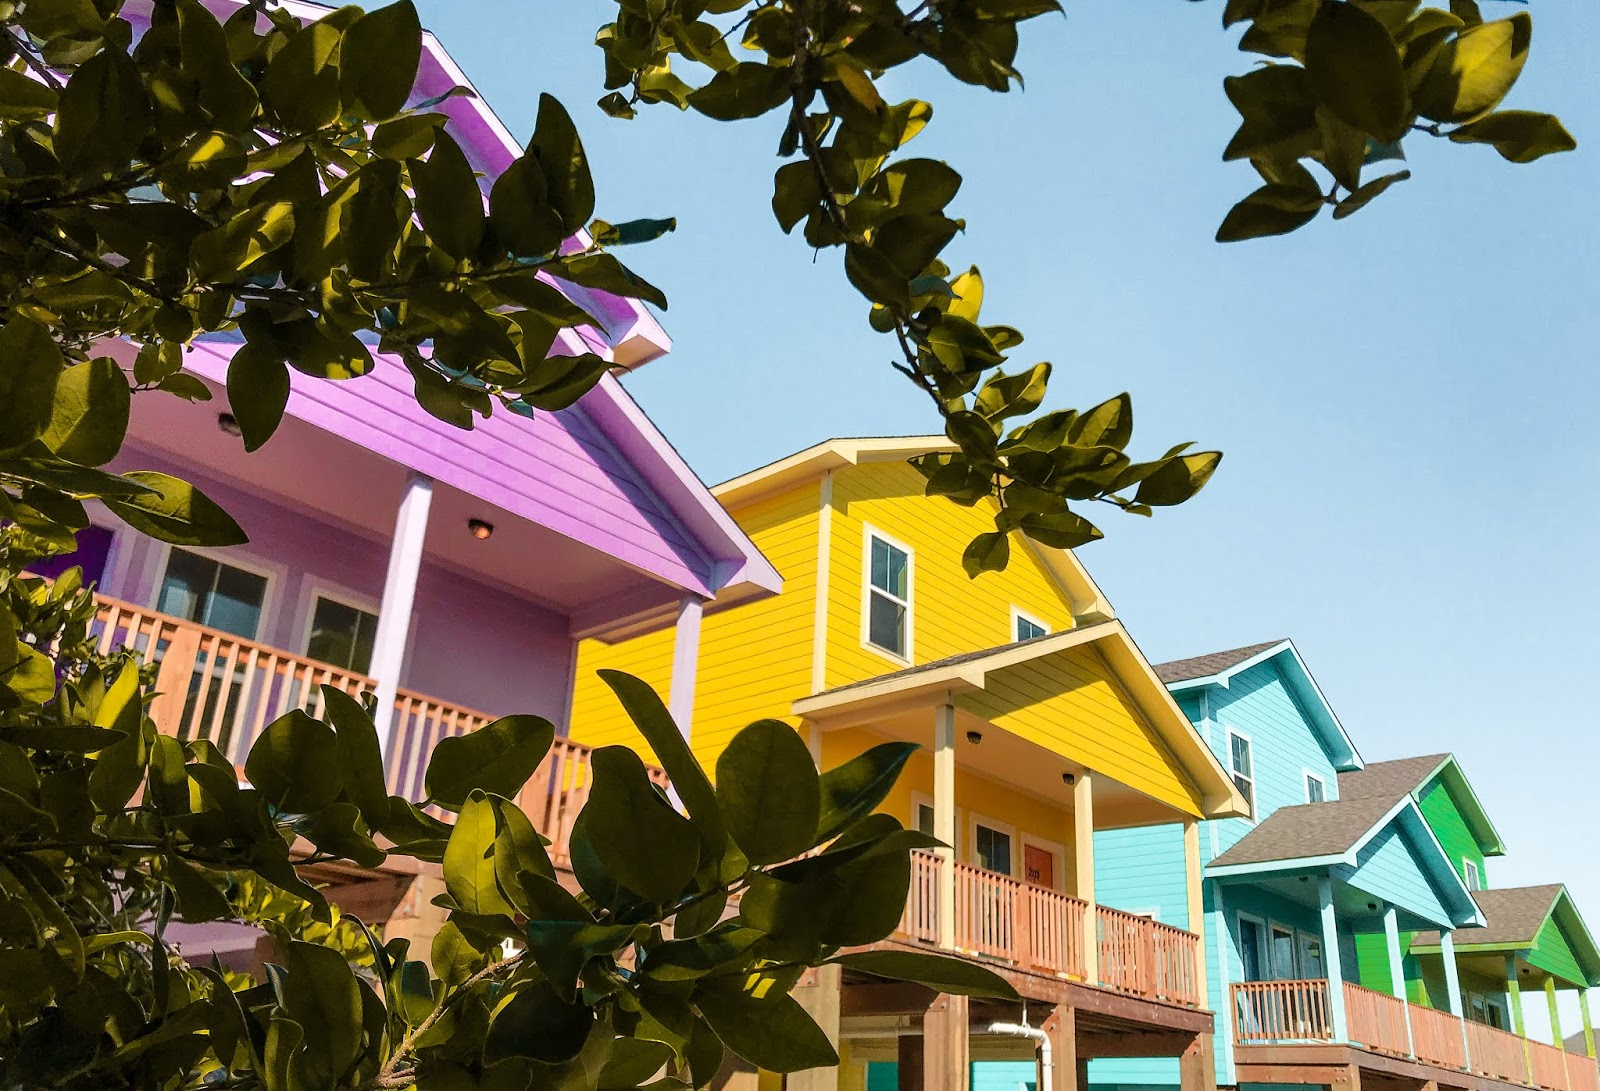 A row of candy-colored houses in Galveston